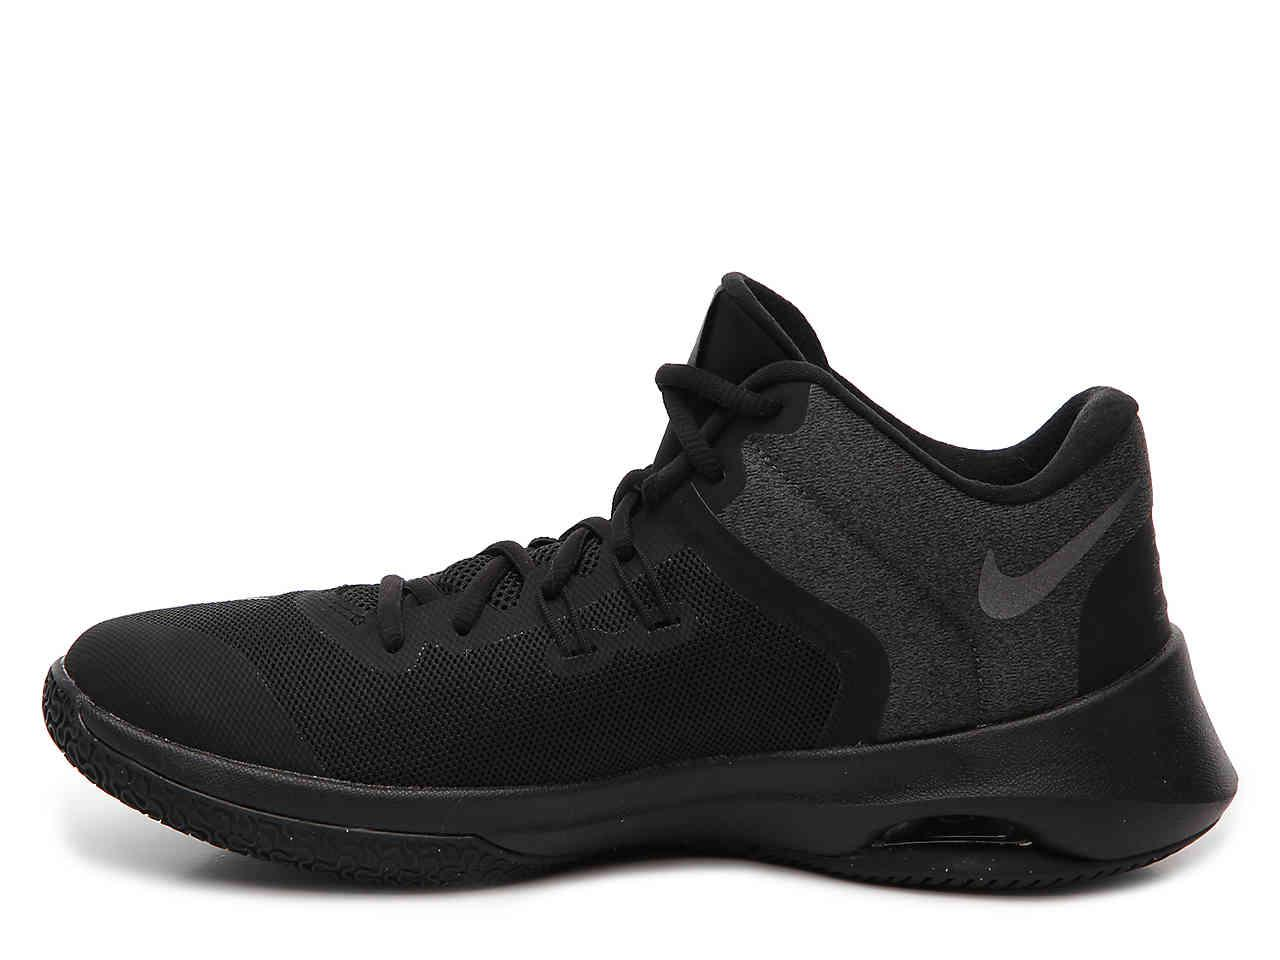 Black Men Shoe Running Versatile Nike For Lyst In Max Air xqBTqwZU